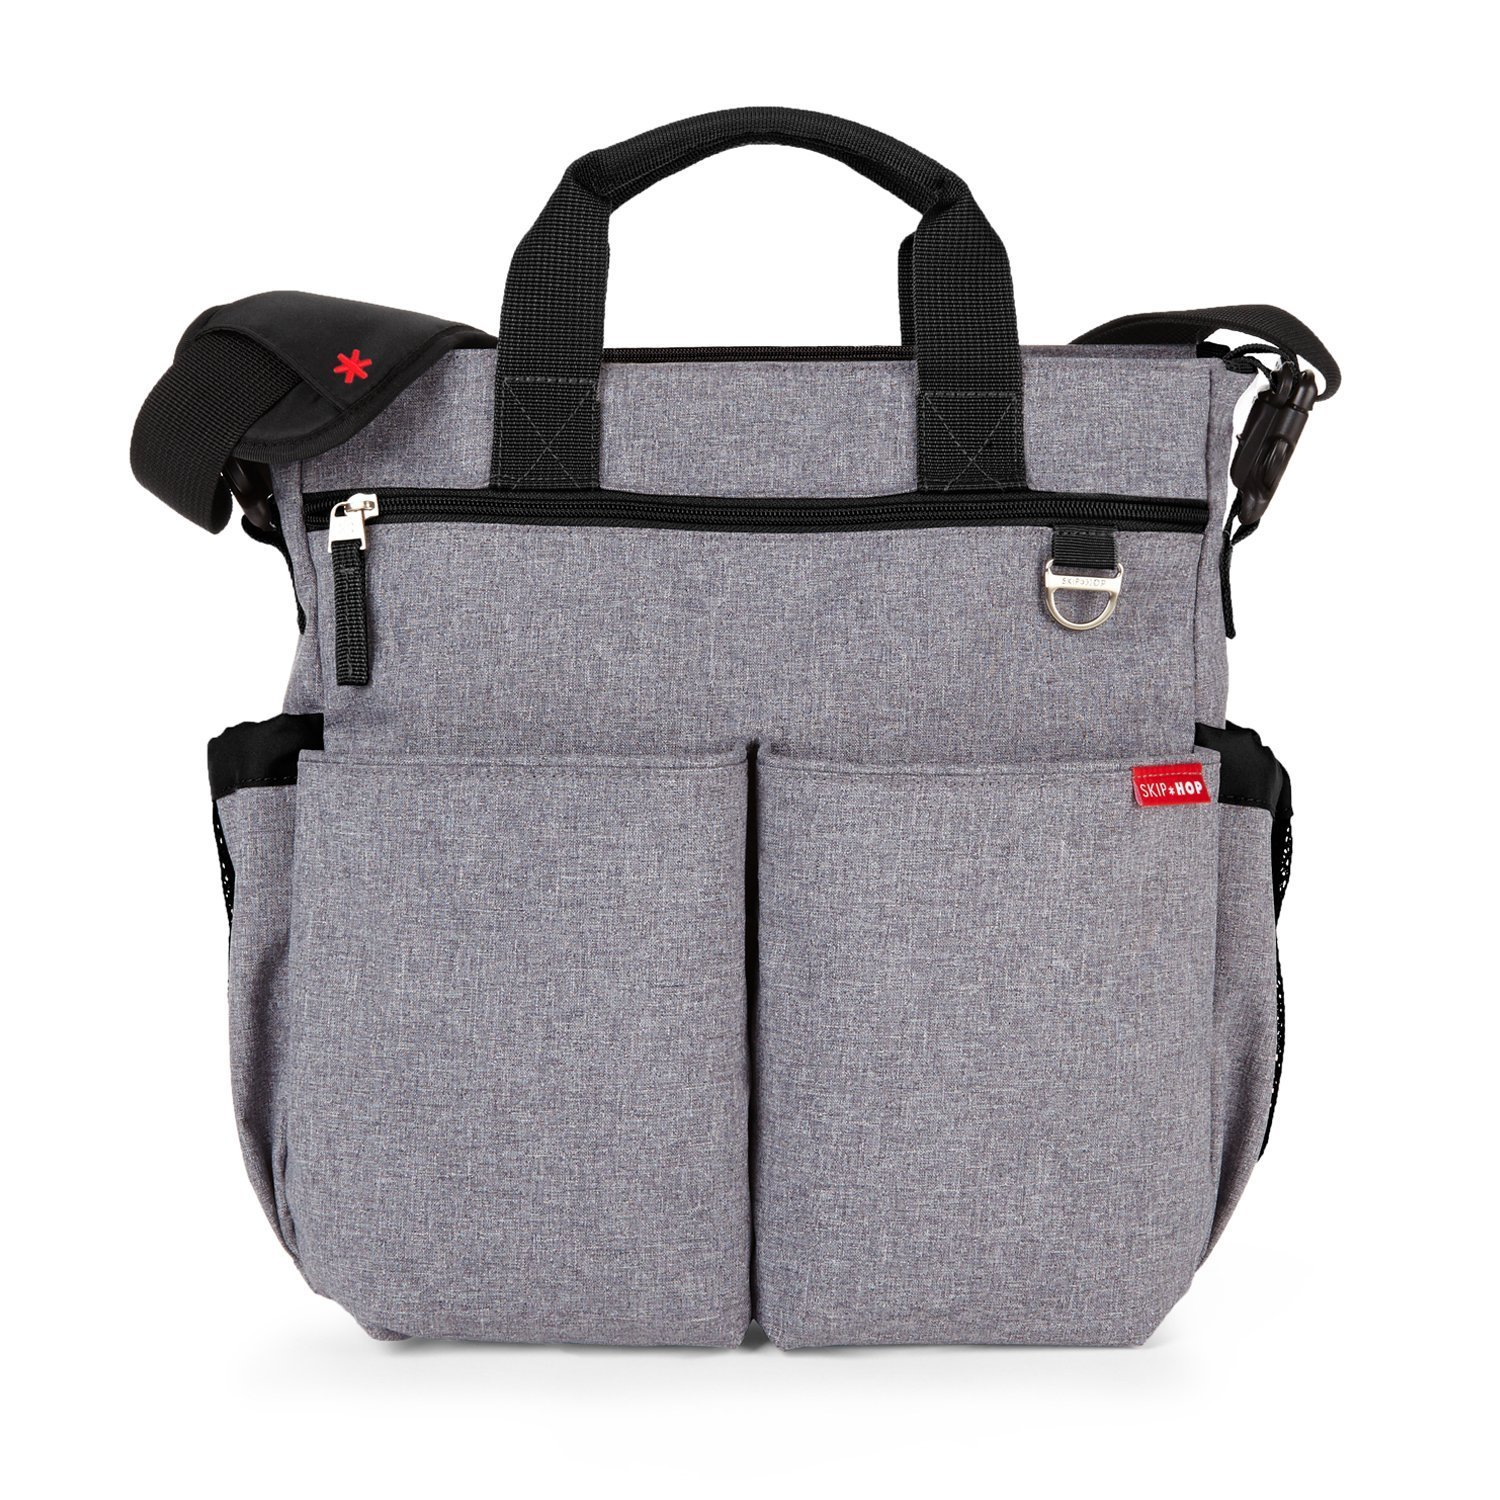 Nursing mothers can be trendy with diaper bag